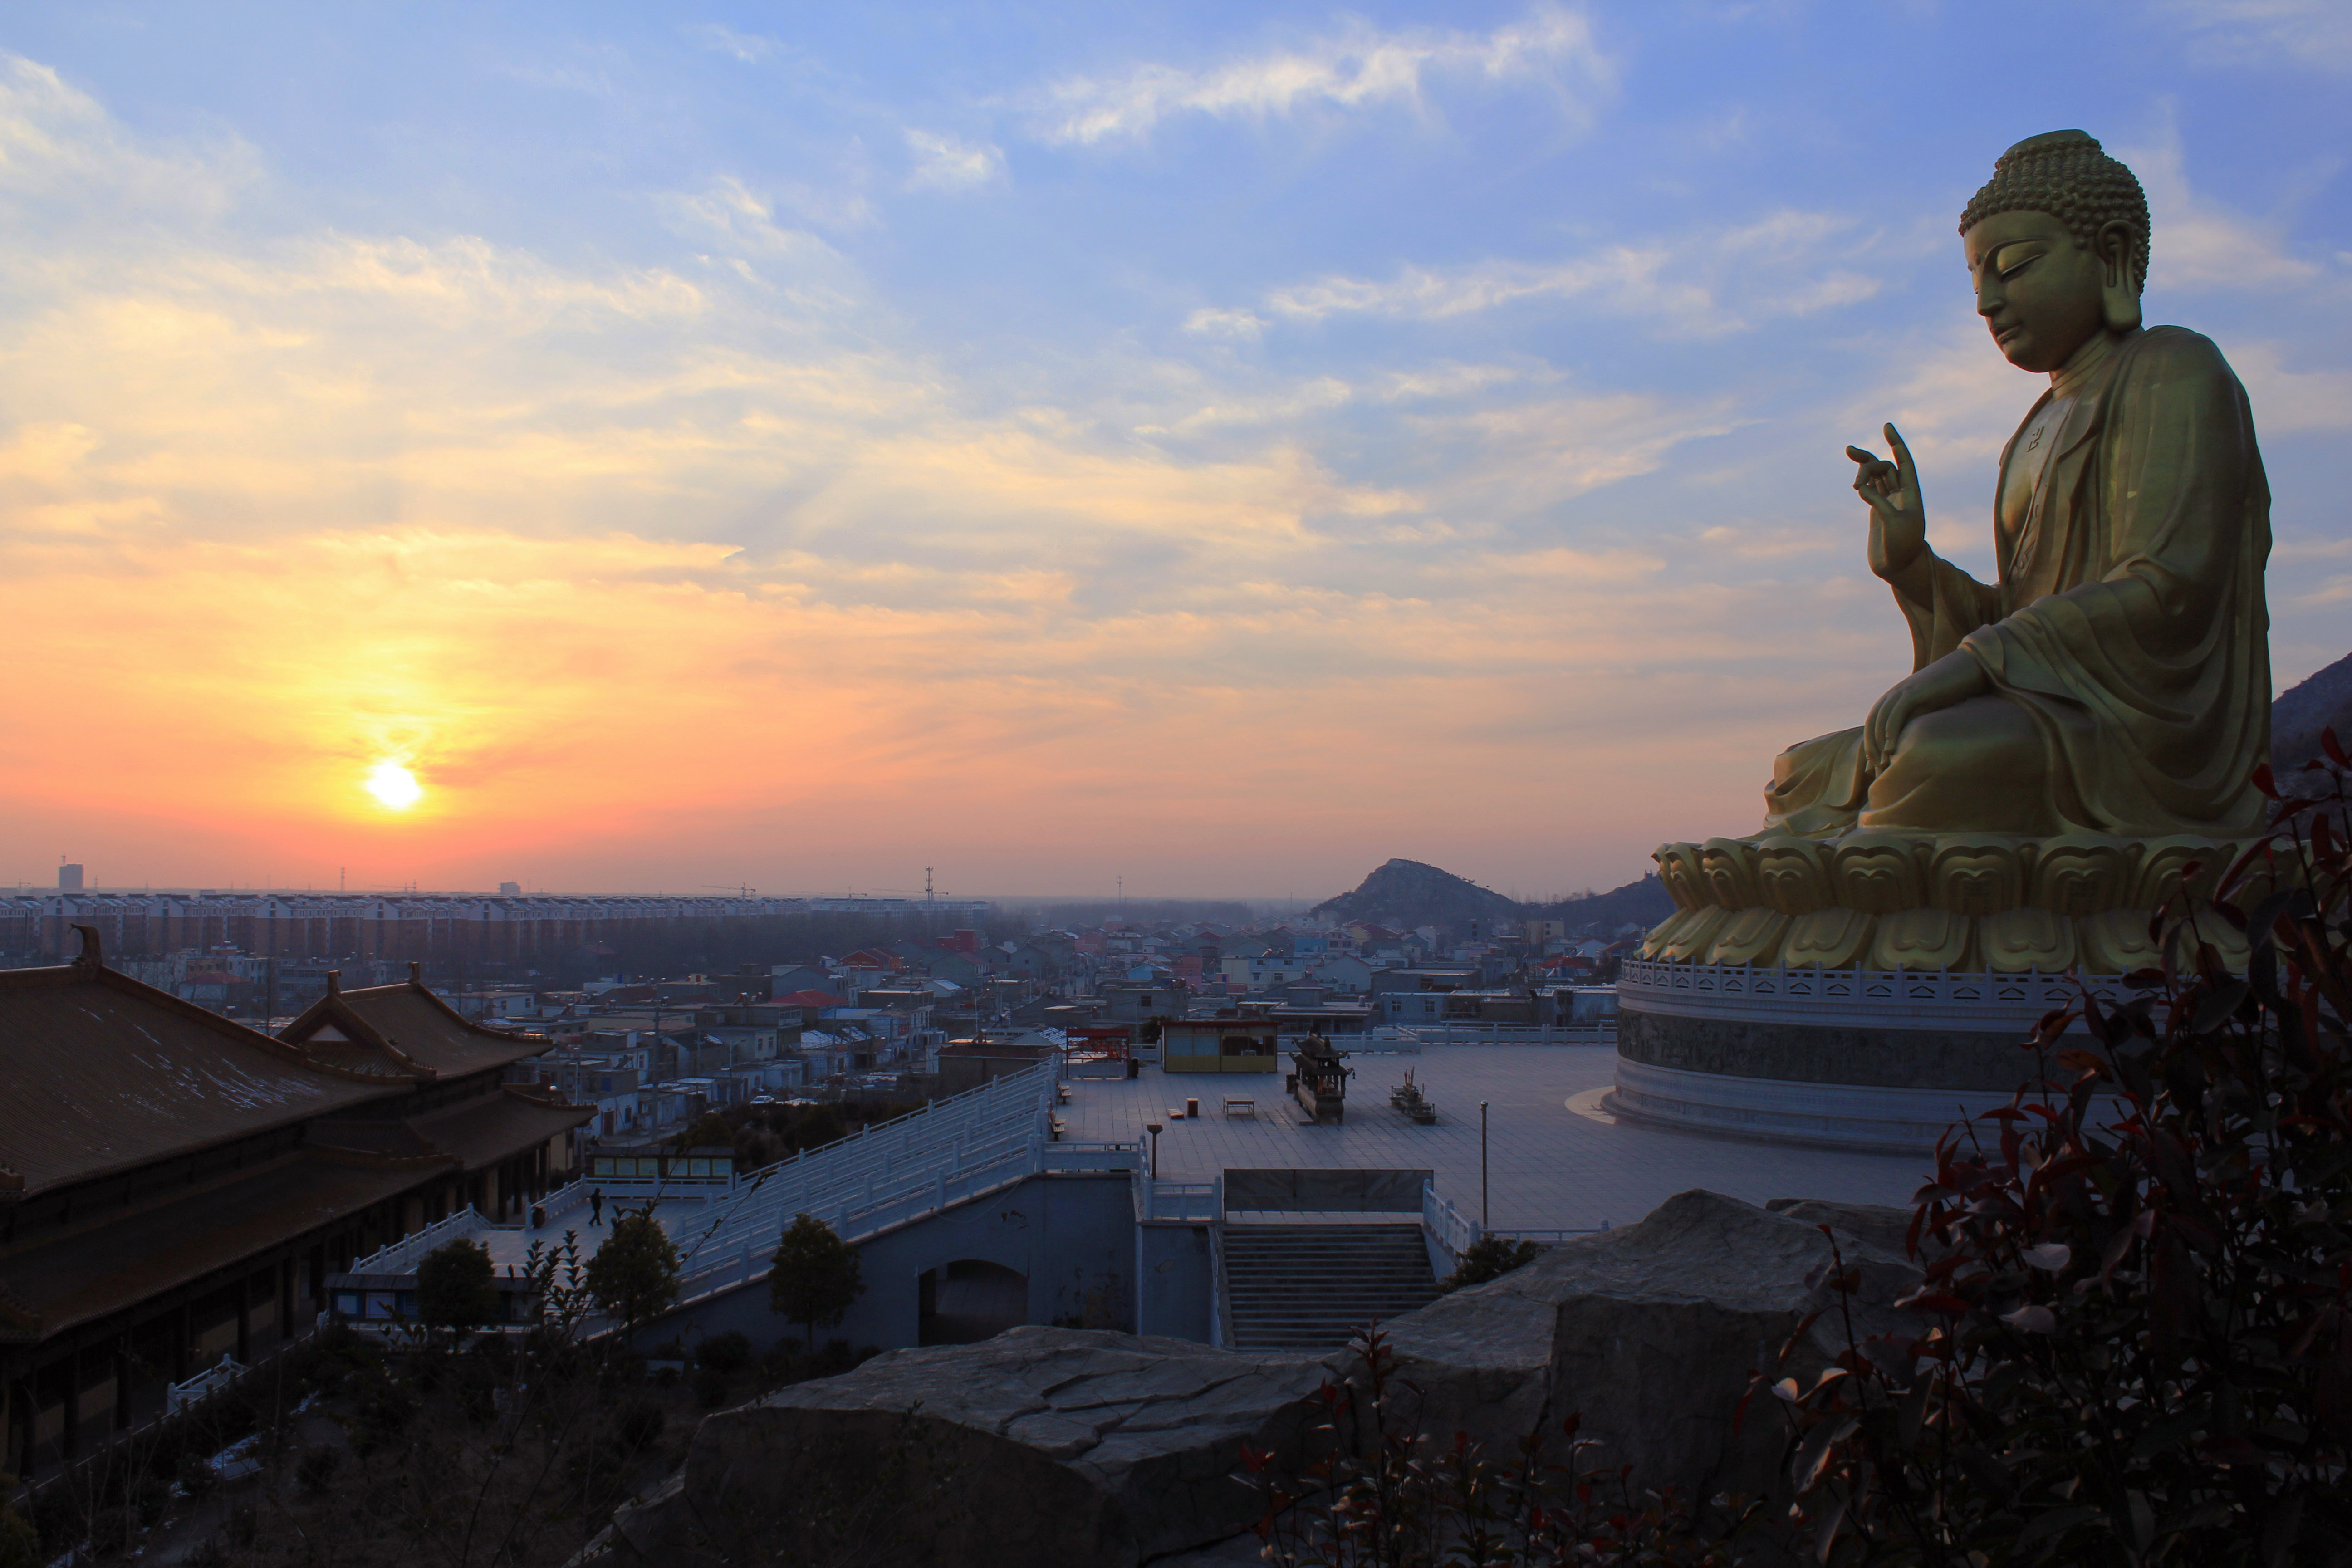 buddha watching over the city at sunset in thailand image